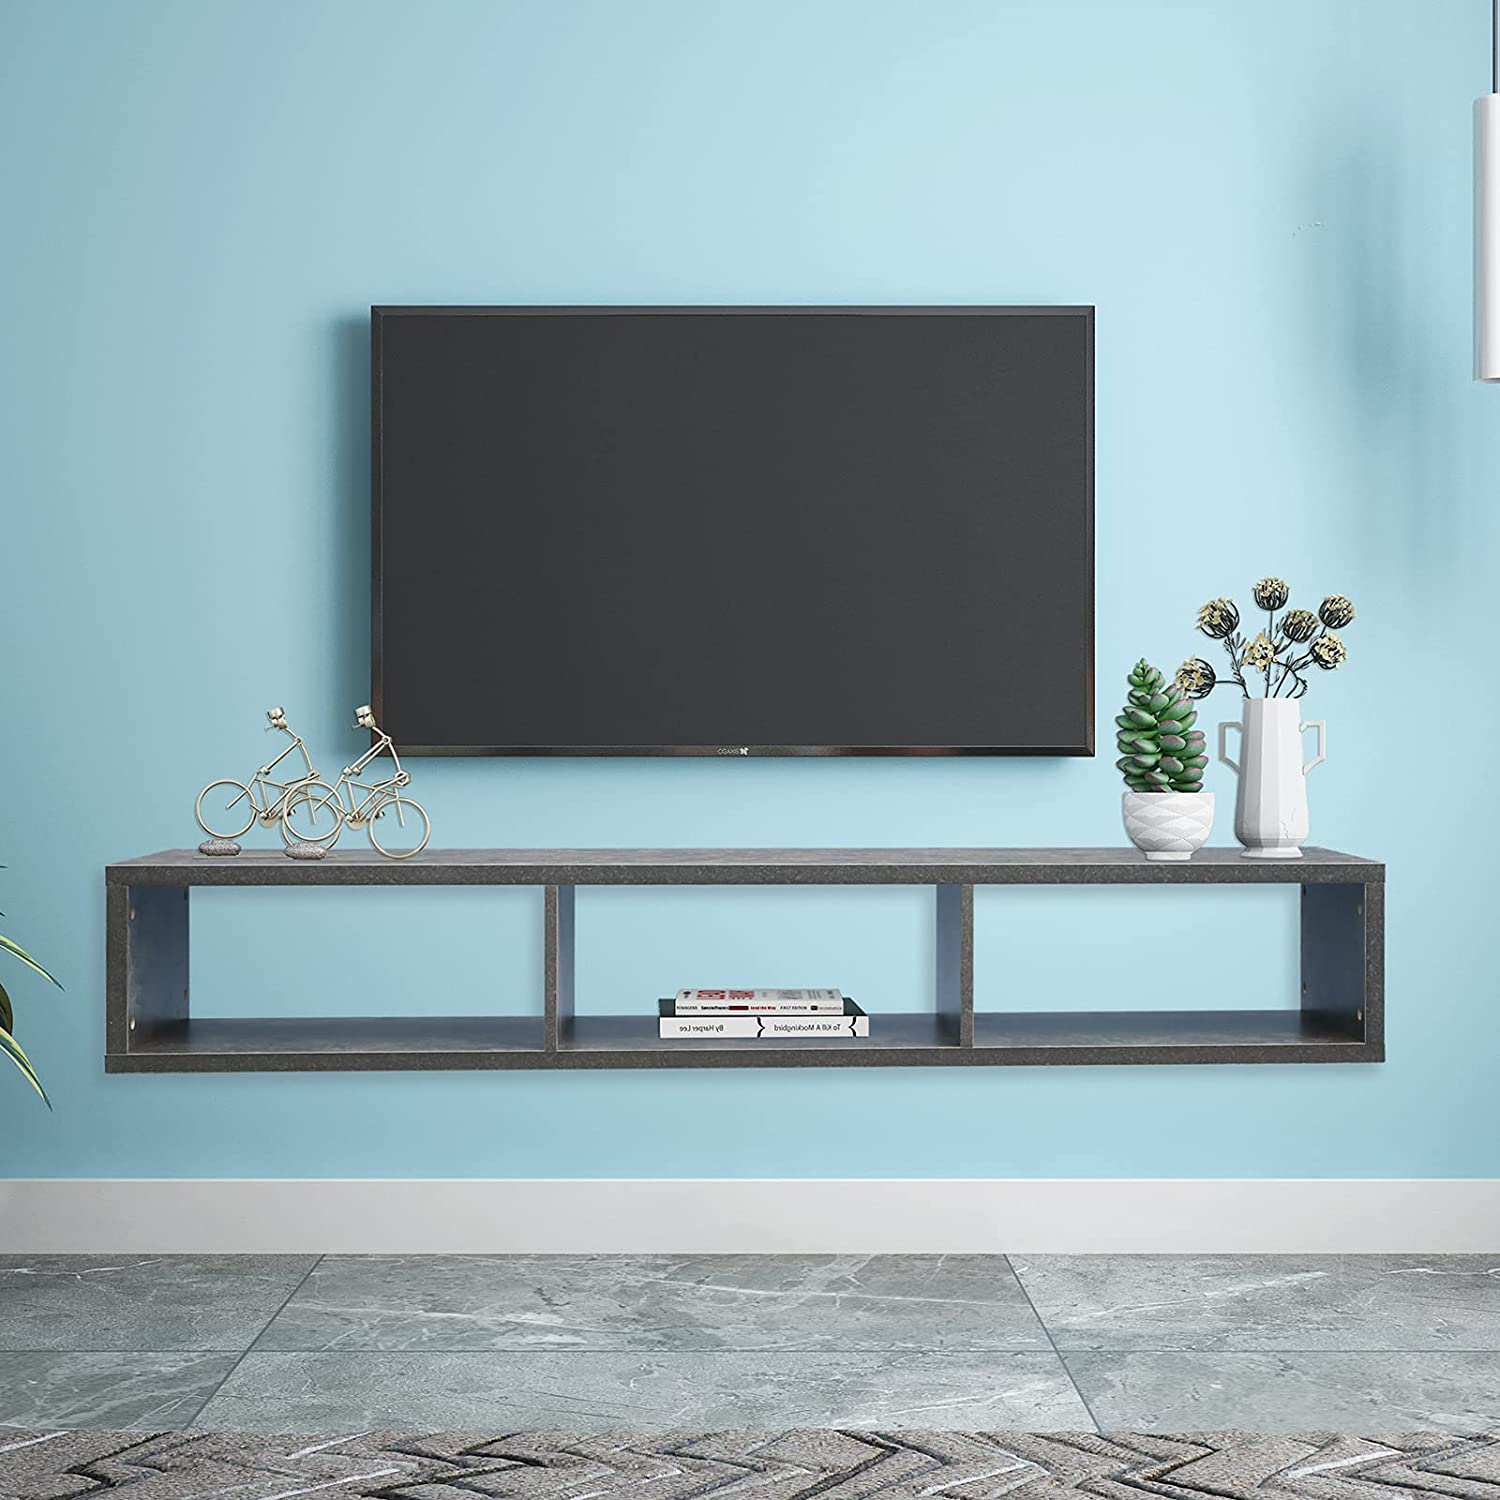 Knocbel Modern Floating TV Shelf Ranking TOP1 Comp Console Wall Dedication Media Mounted